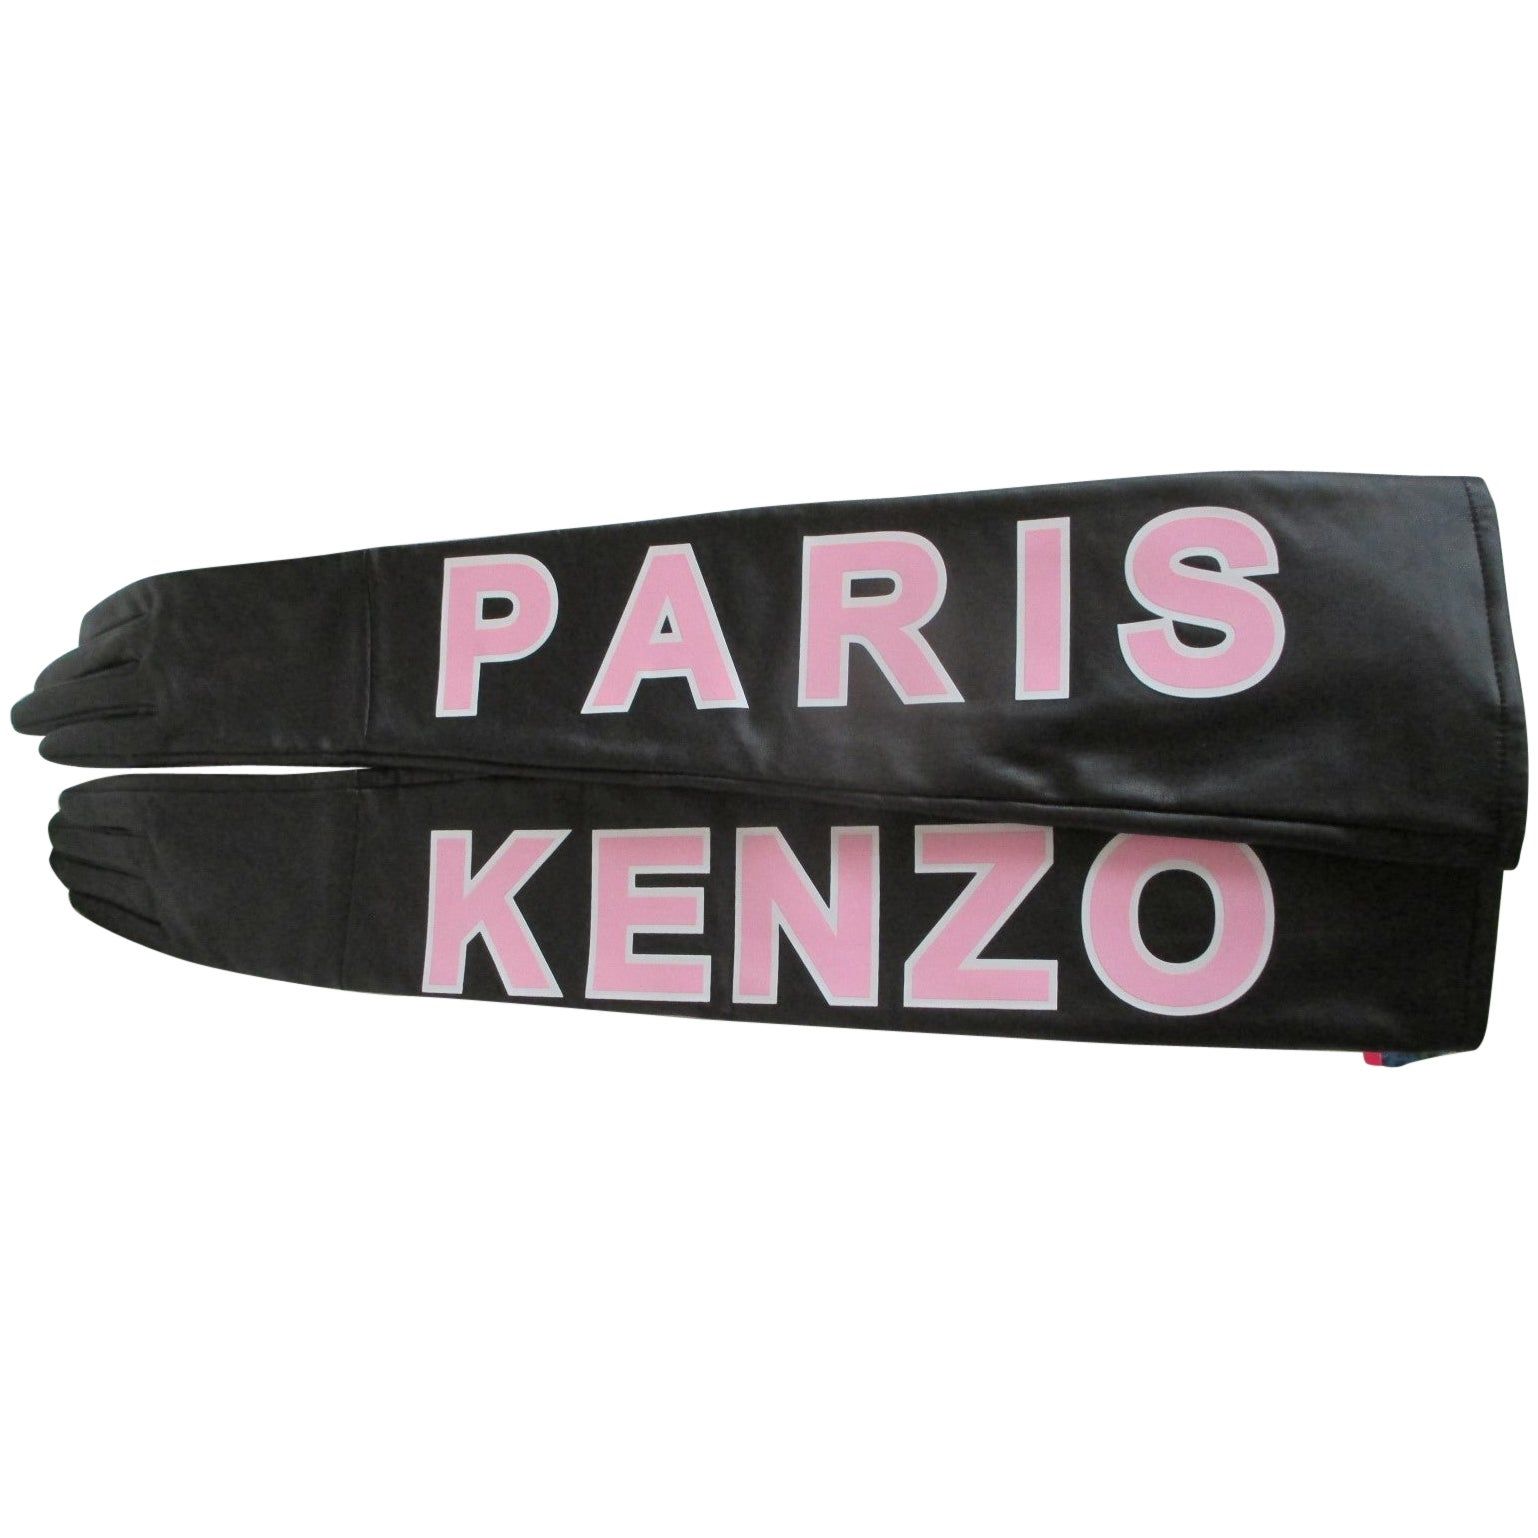 KENZO PARIS Black/Pink Leather Long Gloves size M